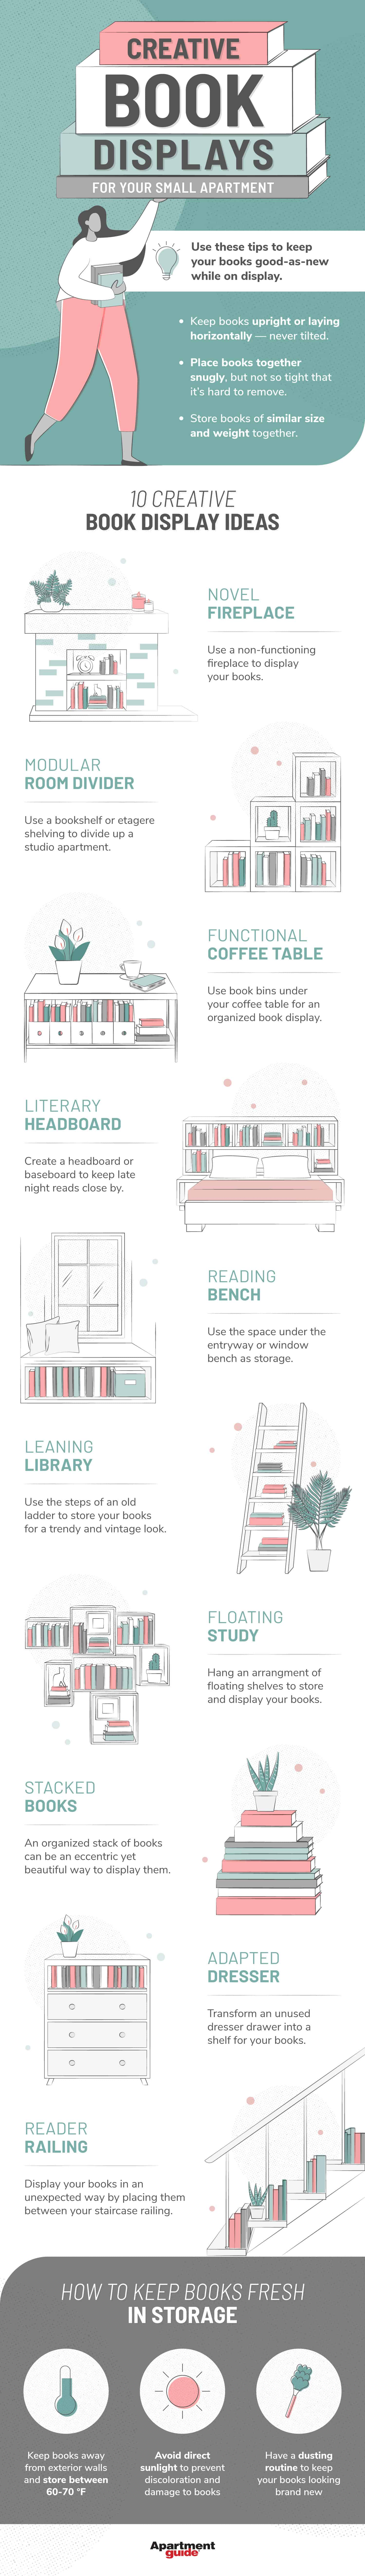 8 Creative Book Display Ideas For a Small Apartment